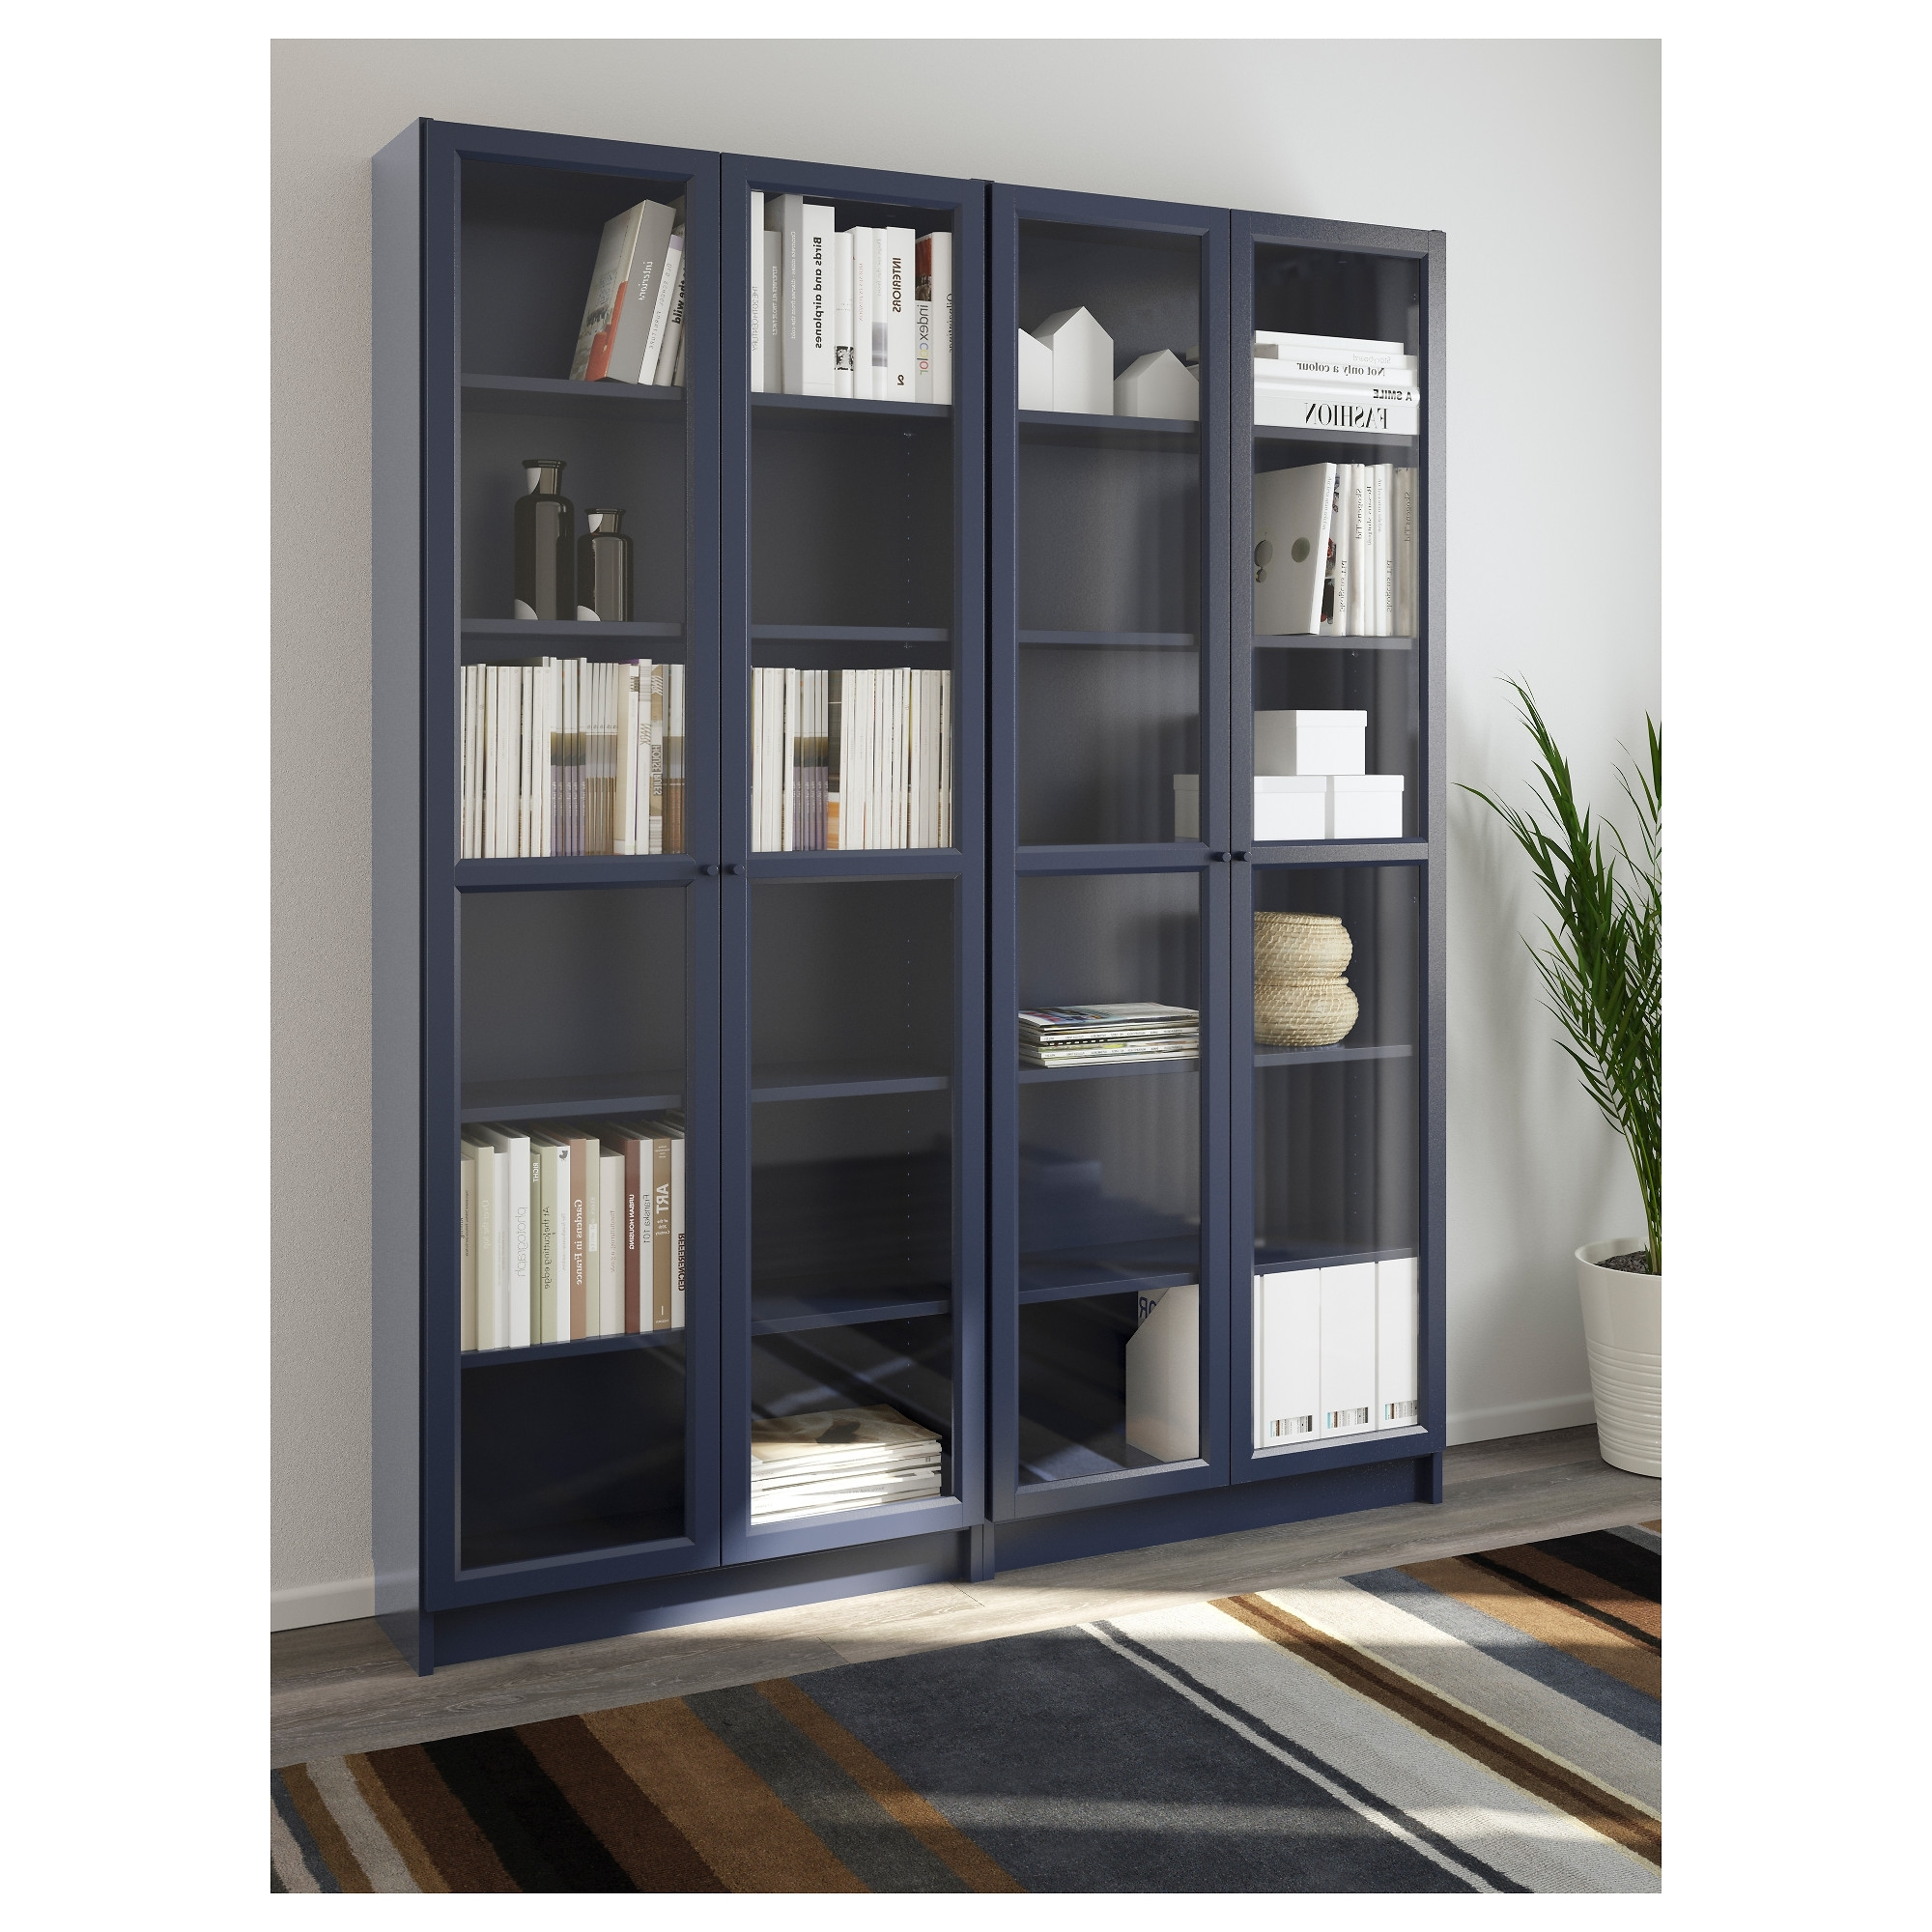 Ikea Billy Bookcases For Famous Billy / Oxberg Bookcase – White/glass, 160x202x28 Cm – Ikea (Gallery 12 of 15)